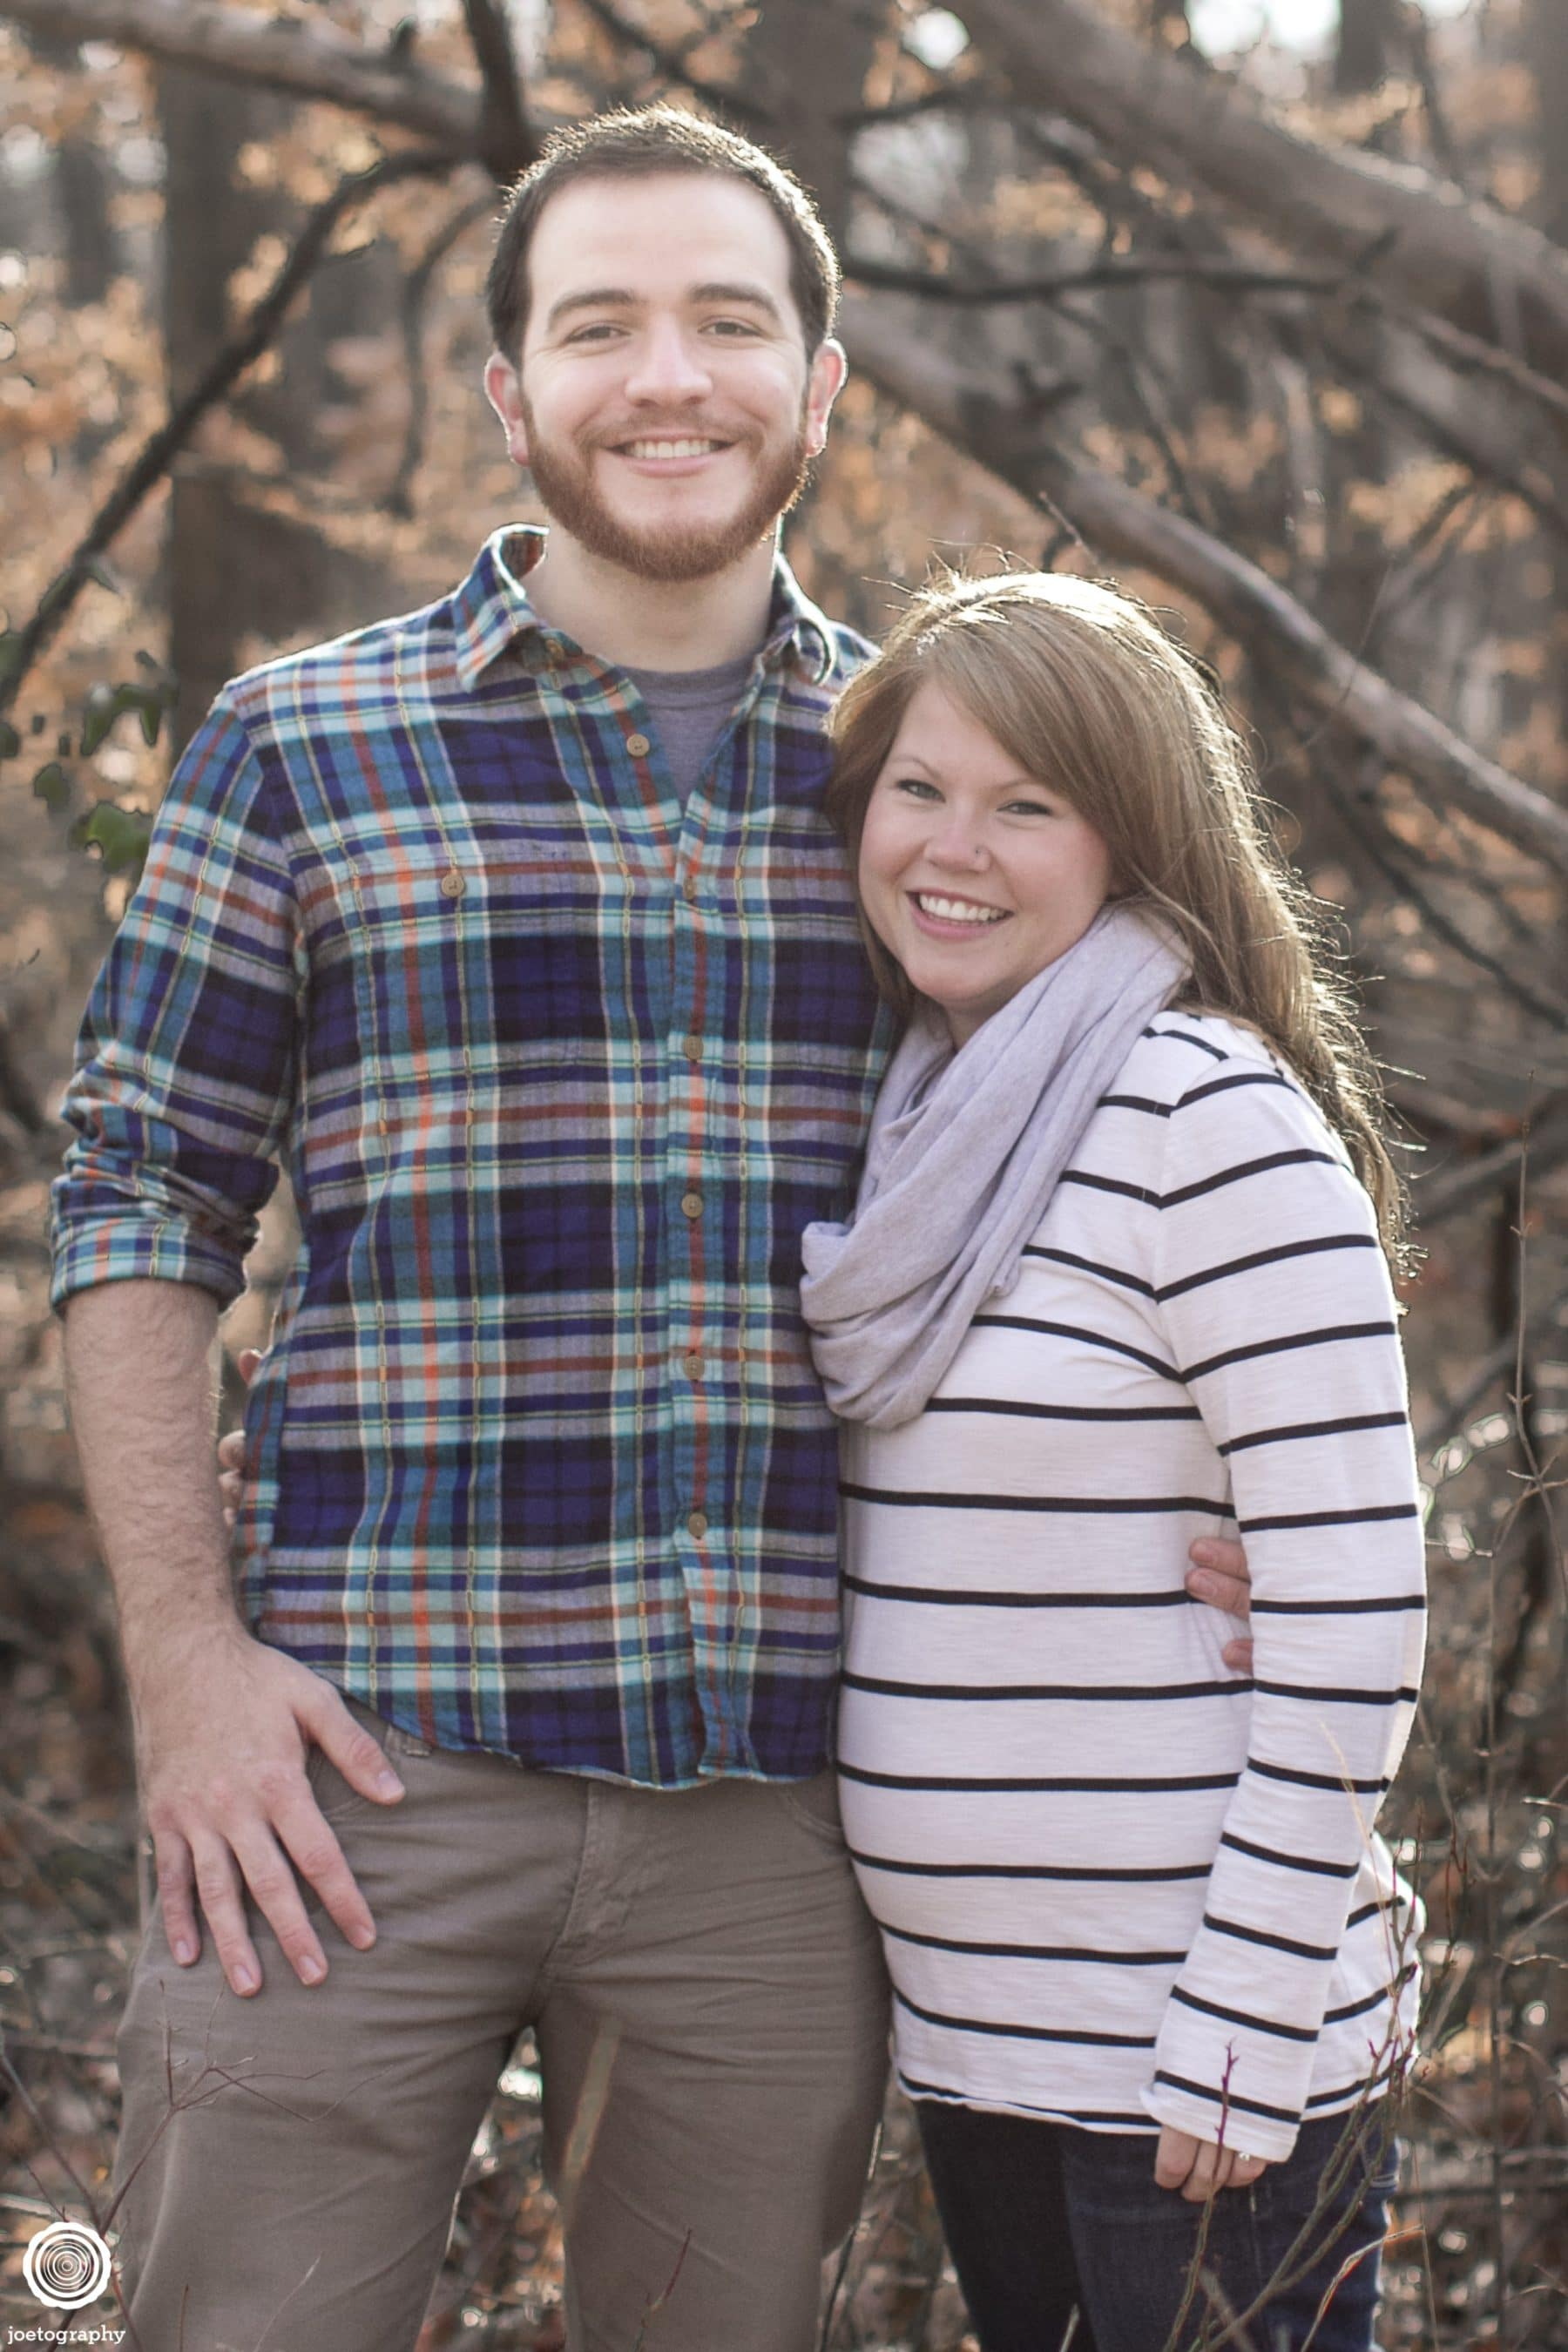 ruetz-maternity-photo-session-broad-ripple-8